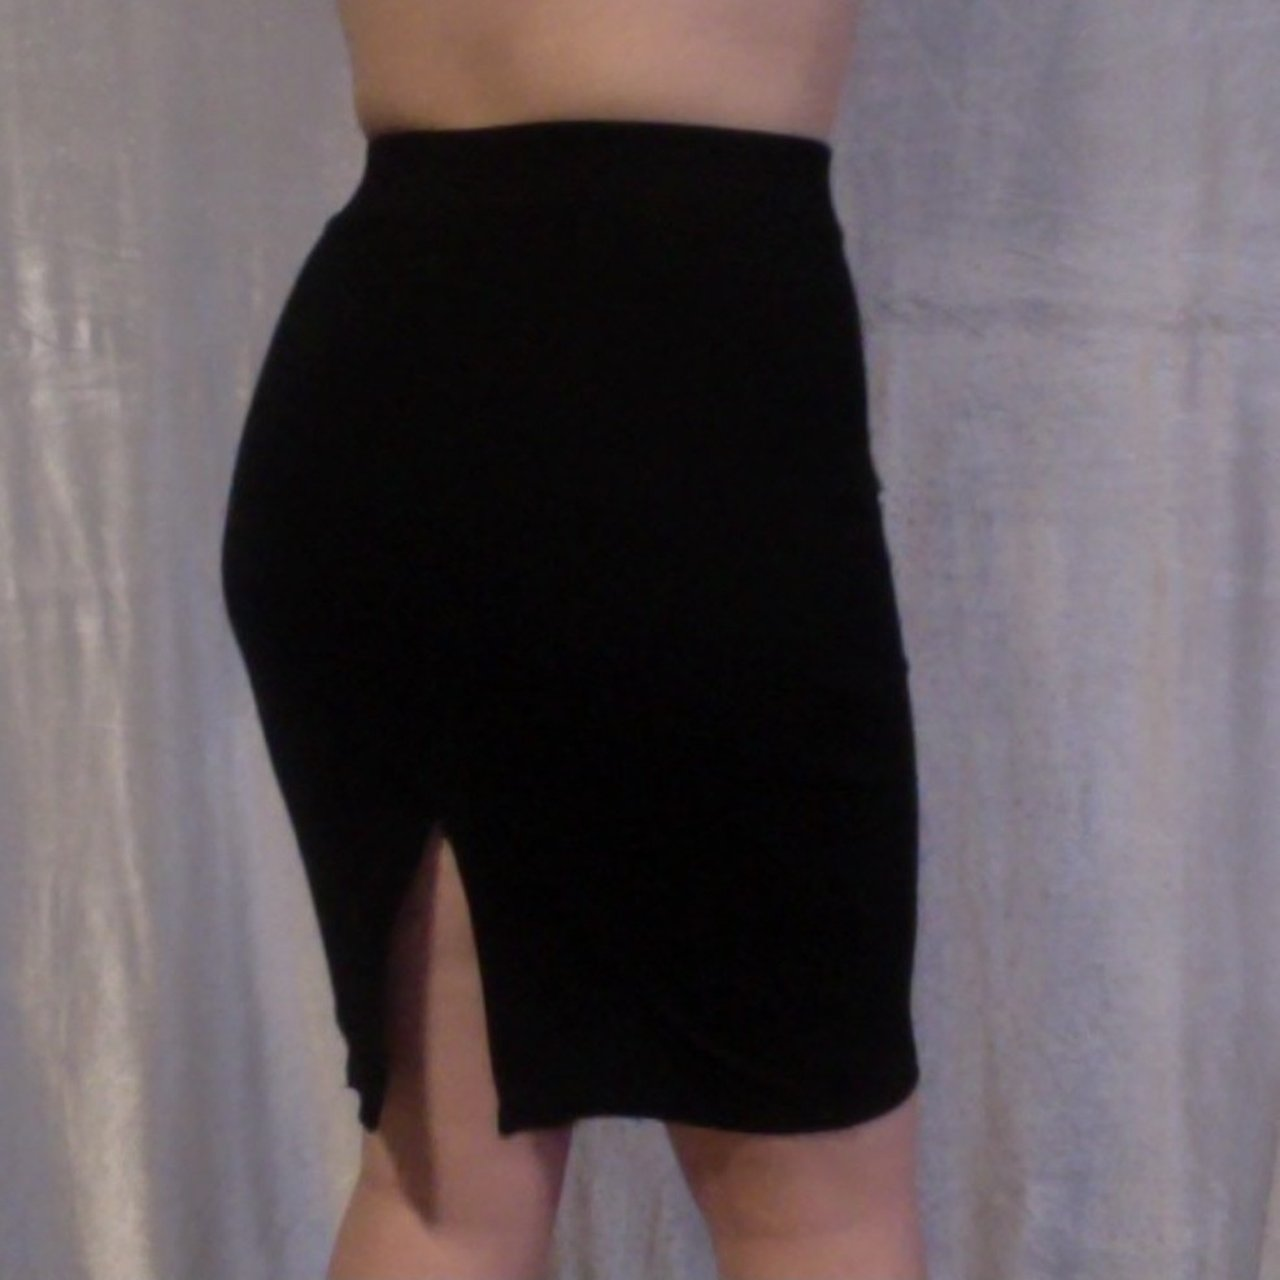 fa92d09ef @bauguette. last month. Chicago, Cook County, United States. Forever 21  Black pencil skirt ...